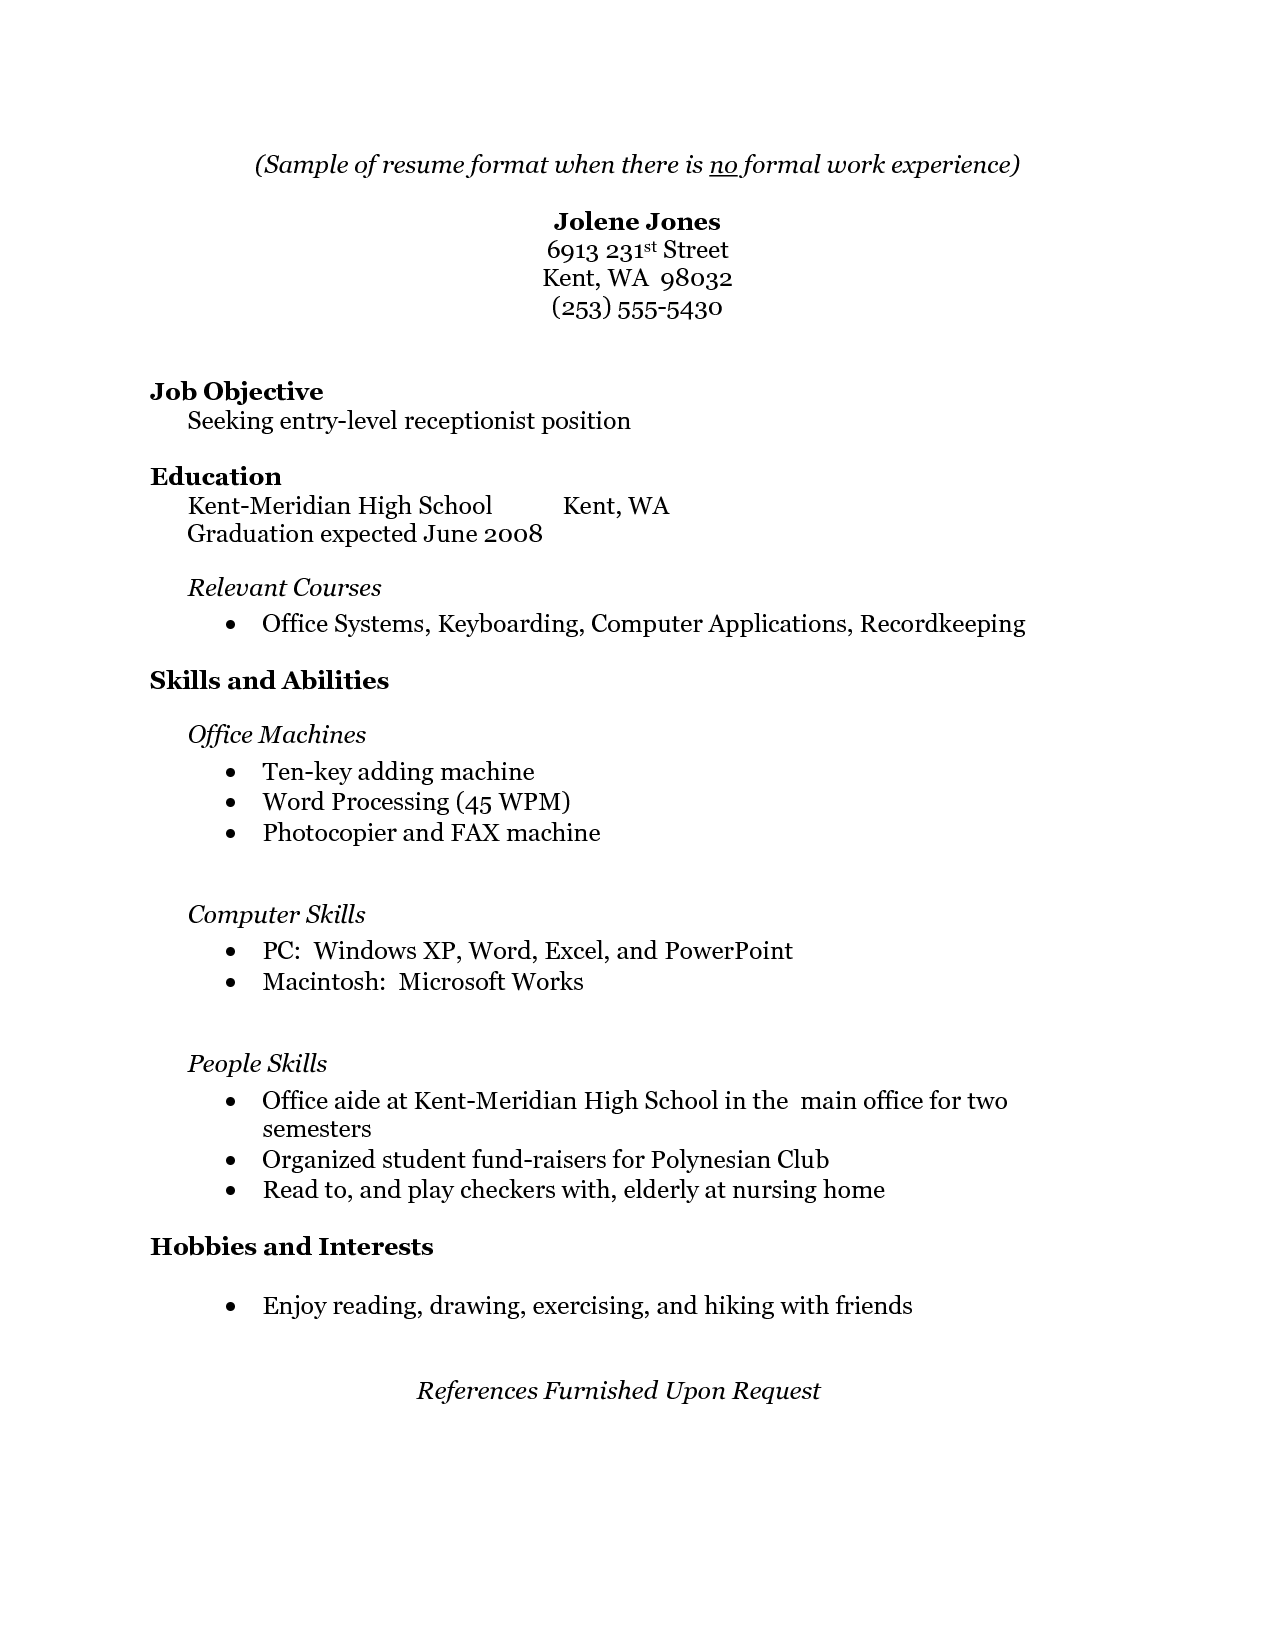 Resume Examples No Job Experience | ***RESUME HELP*** | High school ...